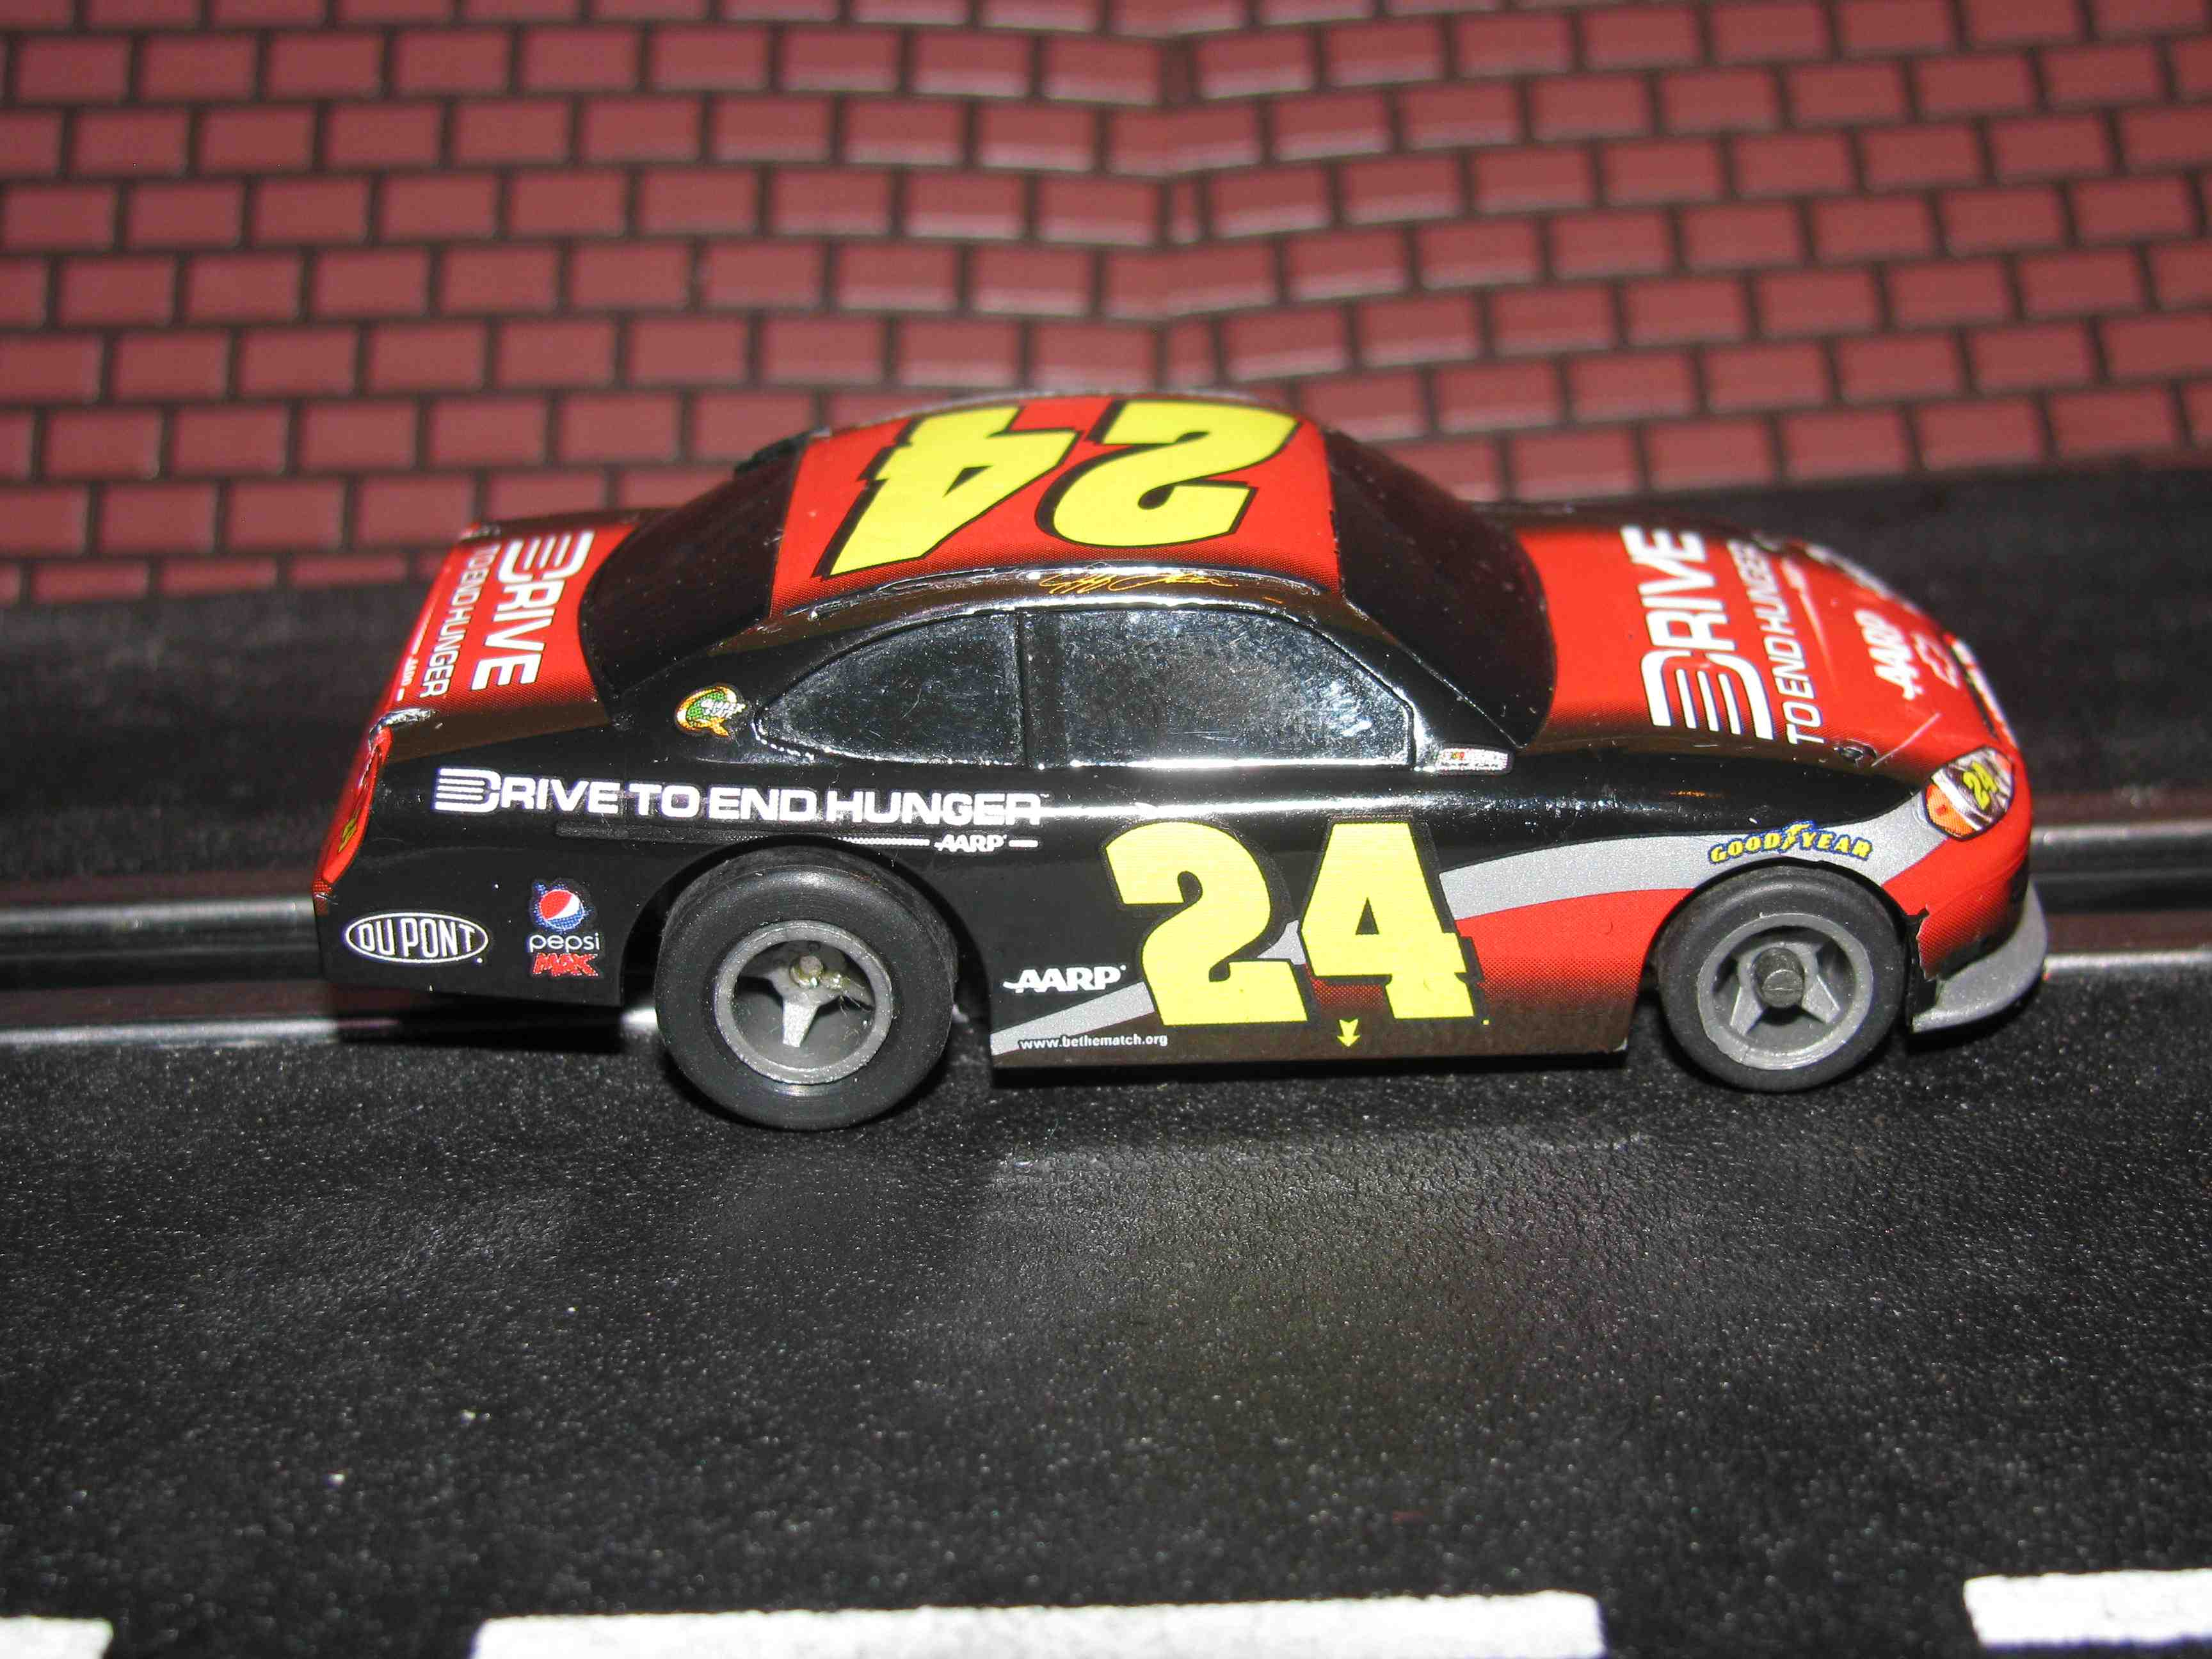 * SOLD * Tyco Like-Like HO Slot Car #24 Chevy Impala (Drive To End Hunger) with Guide Post